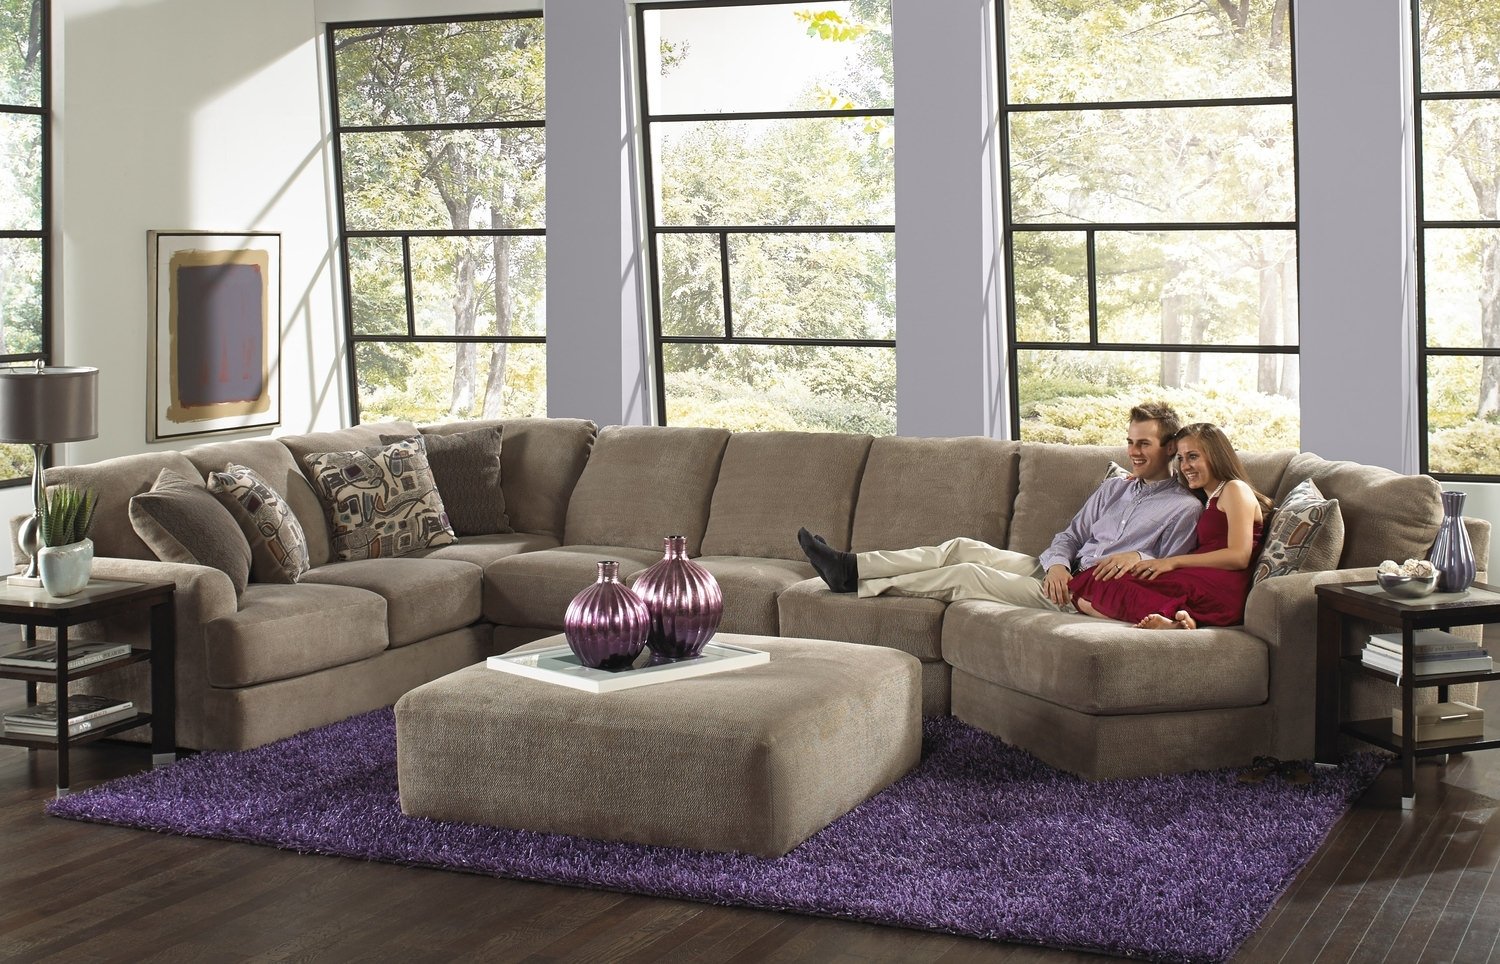 Regal 3 Piece Modular Sectional | Hom Furniture In St Cloud Mn Sectional Sofas (Image 6 of 10)